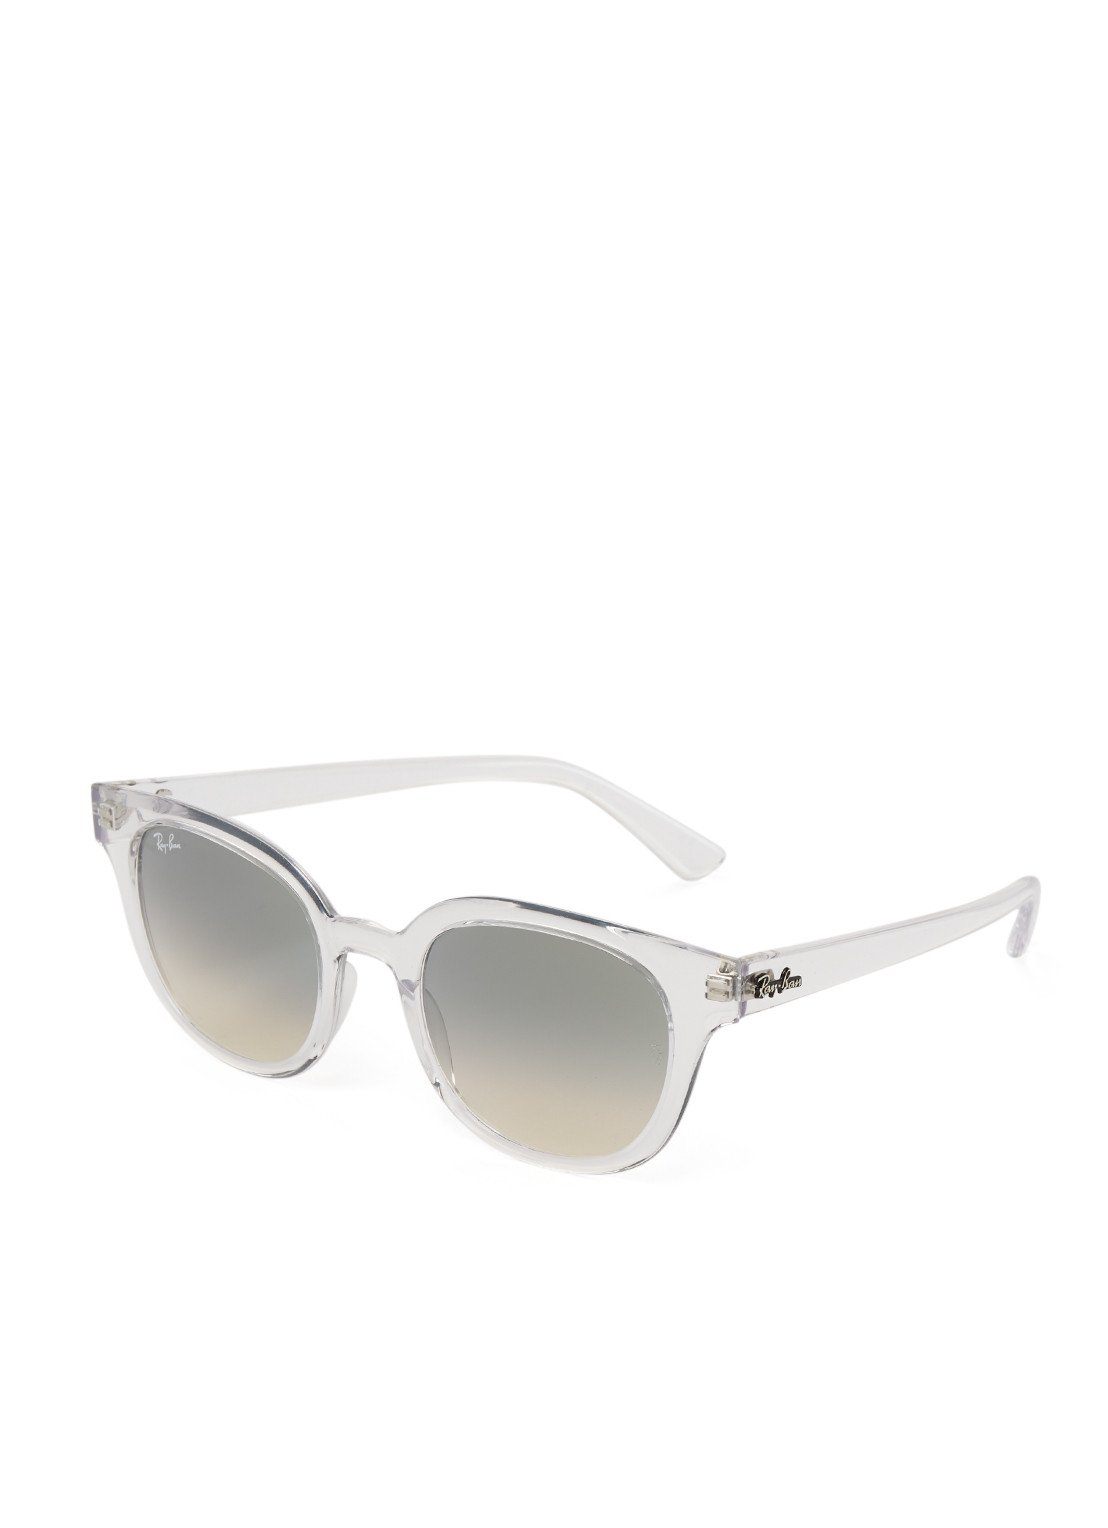 Ray Ban Zonnebril RB4324